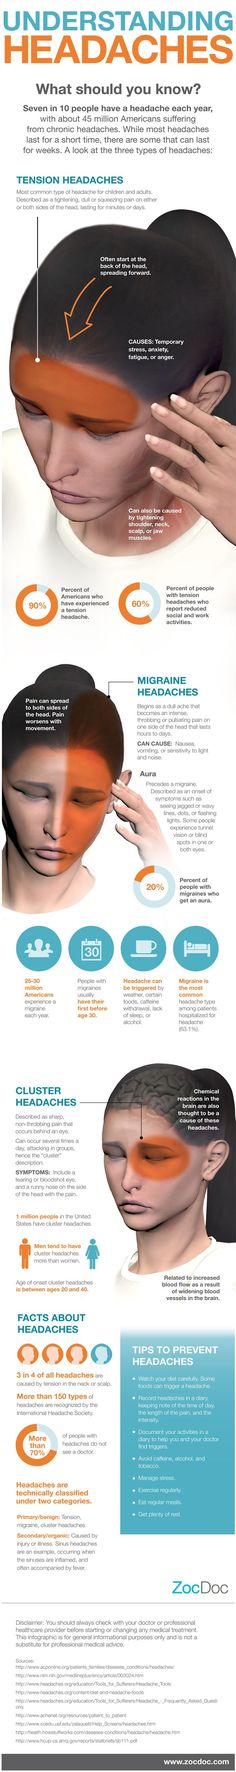 If you need to understand headaches this is great information for you. Read more about your headaches here and then give us a call for headache relief in Naperville, IL. Our team at Pan to Health are specialists in getting you relief from headache pain fast. Call today for your free headache consultation. 630-922-6500 http://paintohealth.com